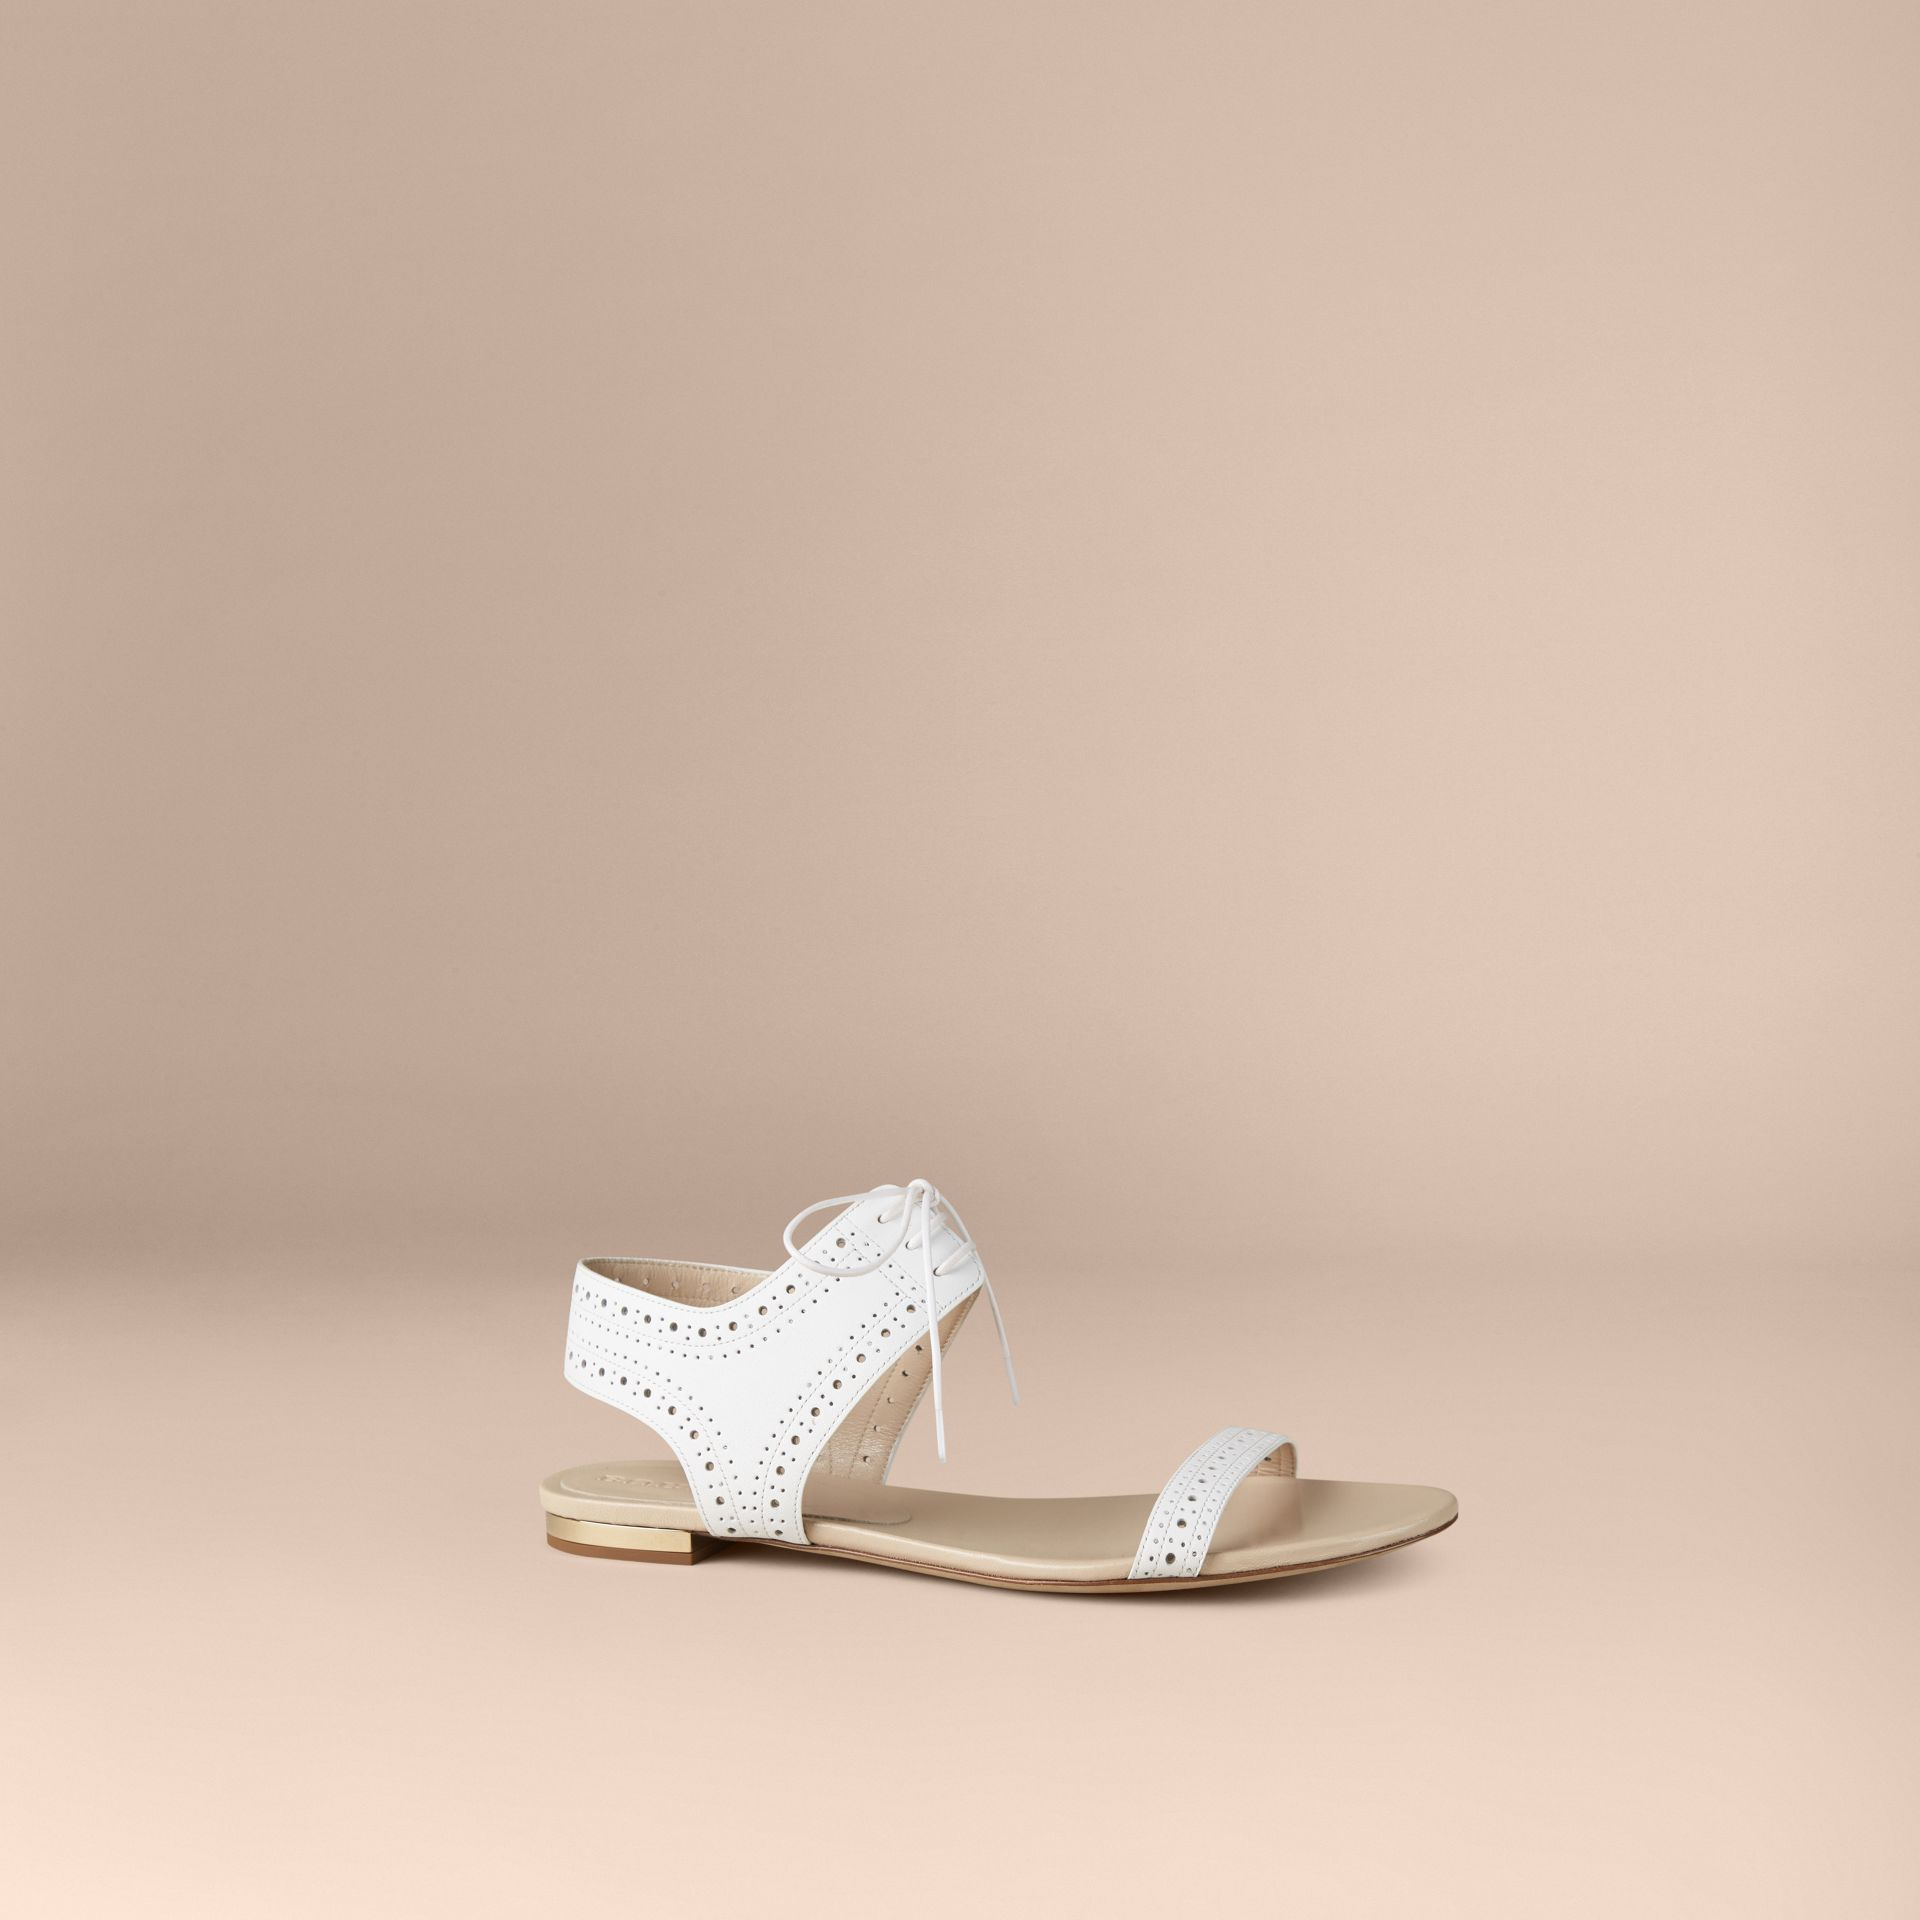 Optic white Perforated Detail Leather Sandals - gallery image 1